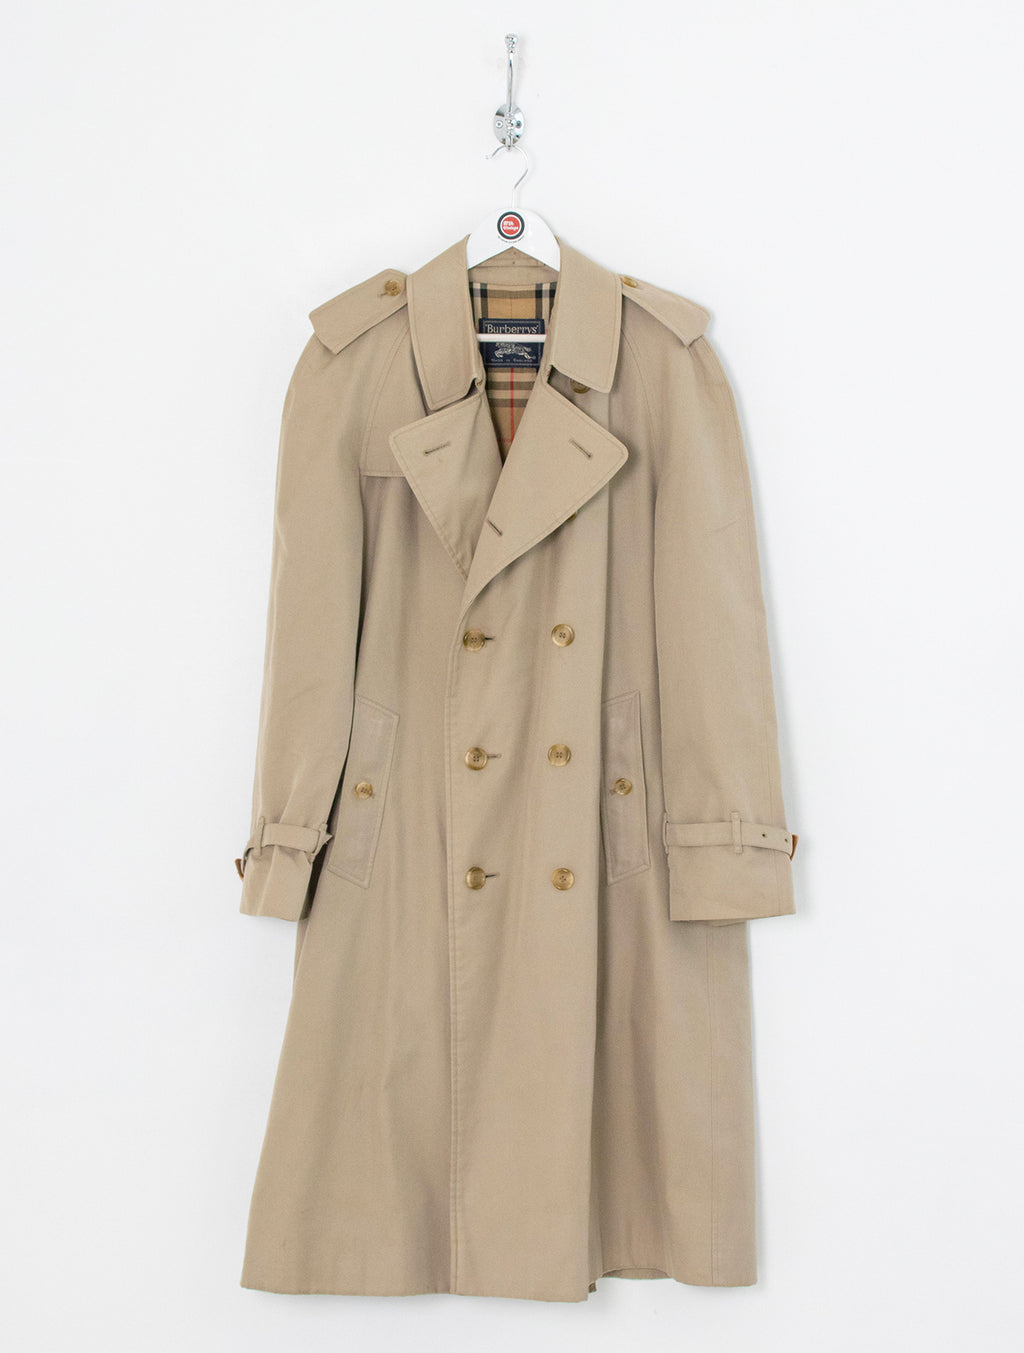 Women's Burberry Trench Coat (XL)